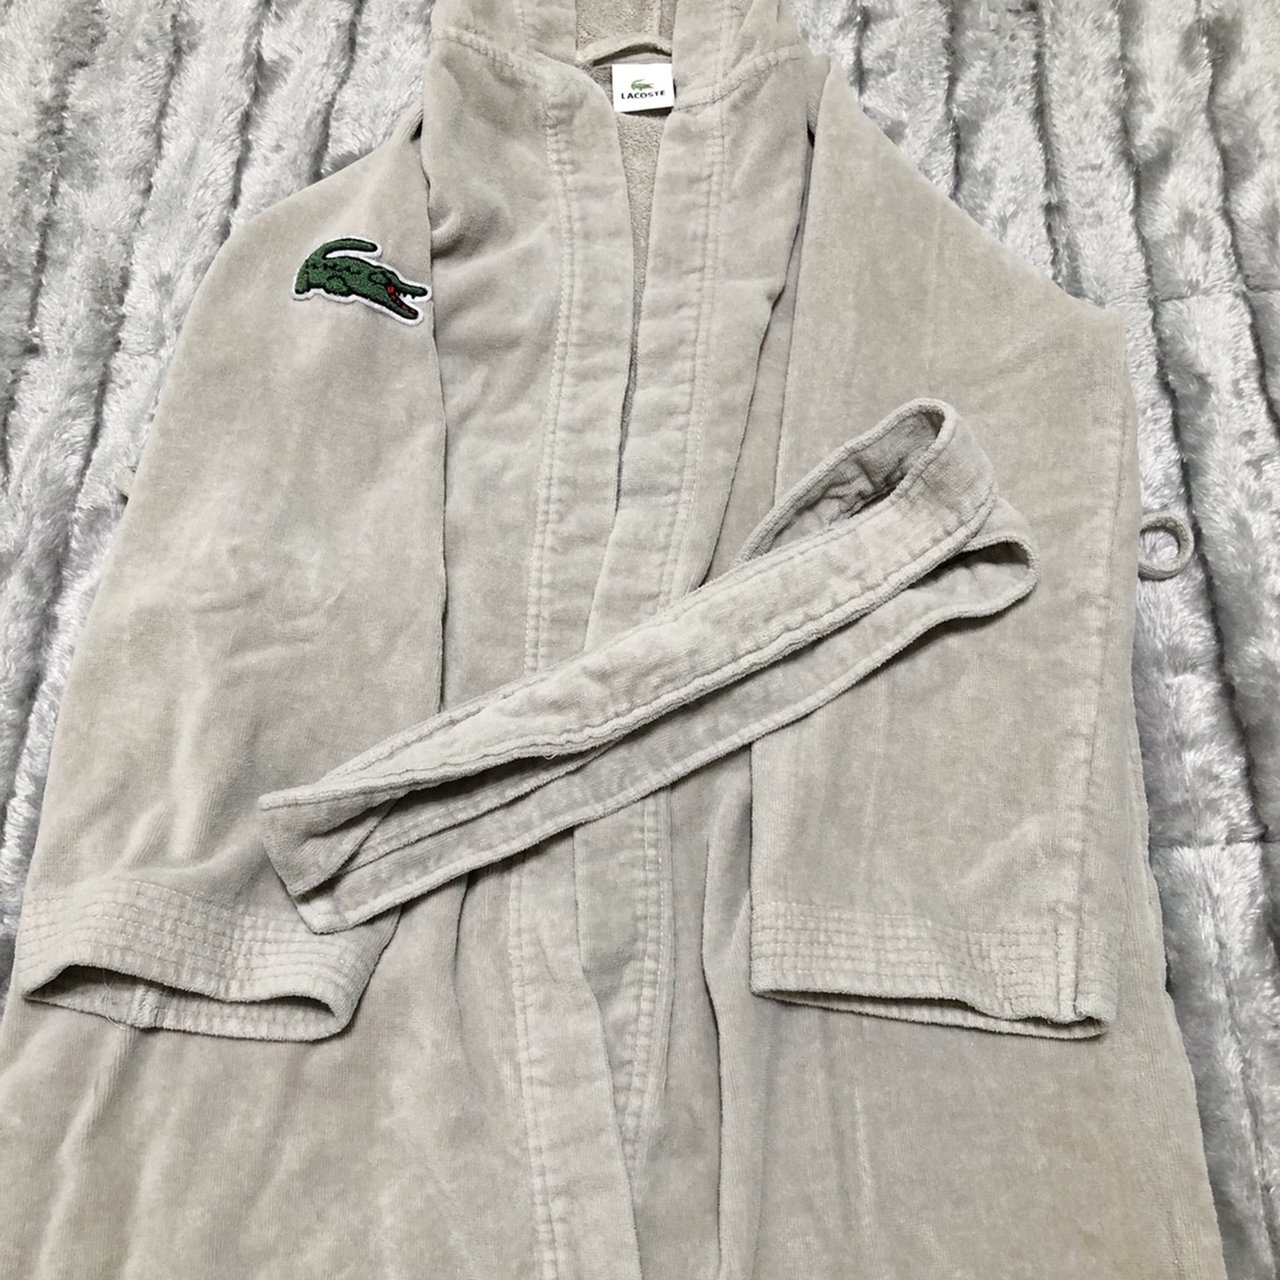 e7f6aa40b3 Gray Lacoste hooded bathrobe  size unknown. Thinking a youth - Depop